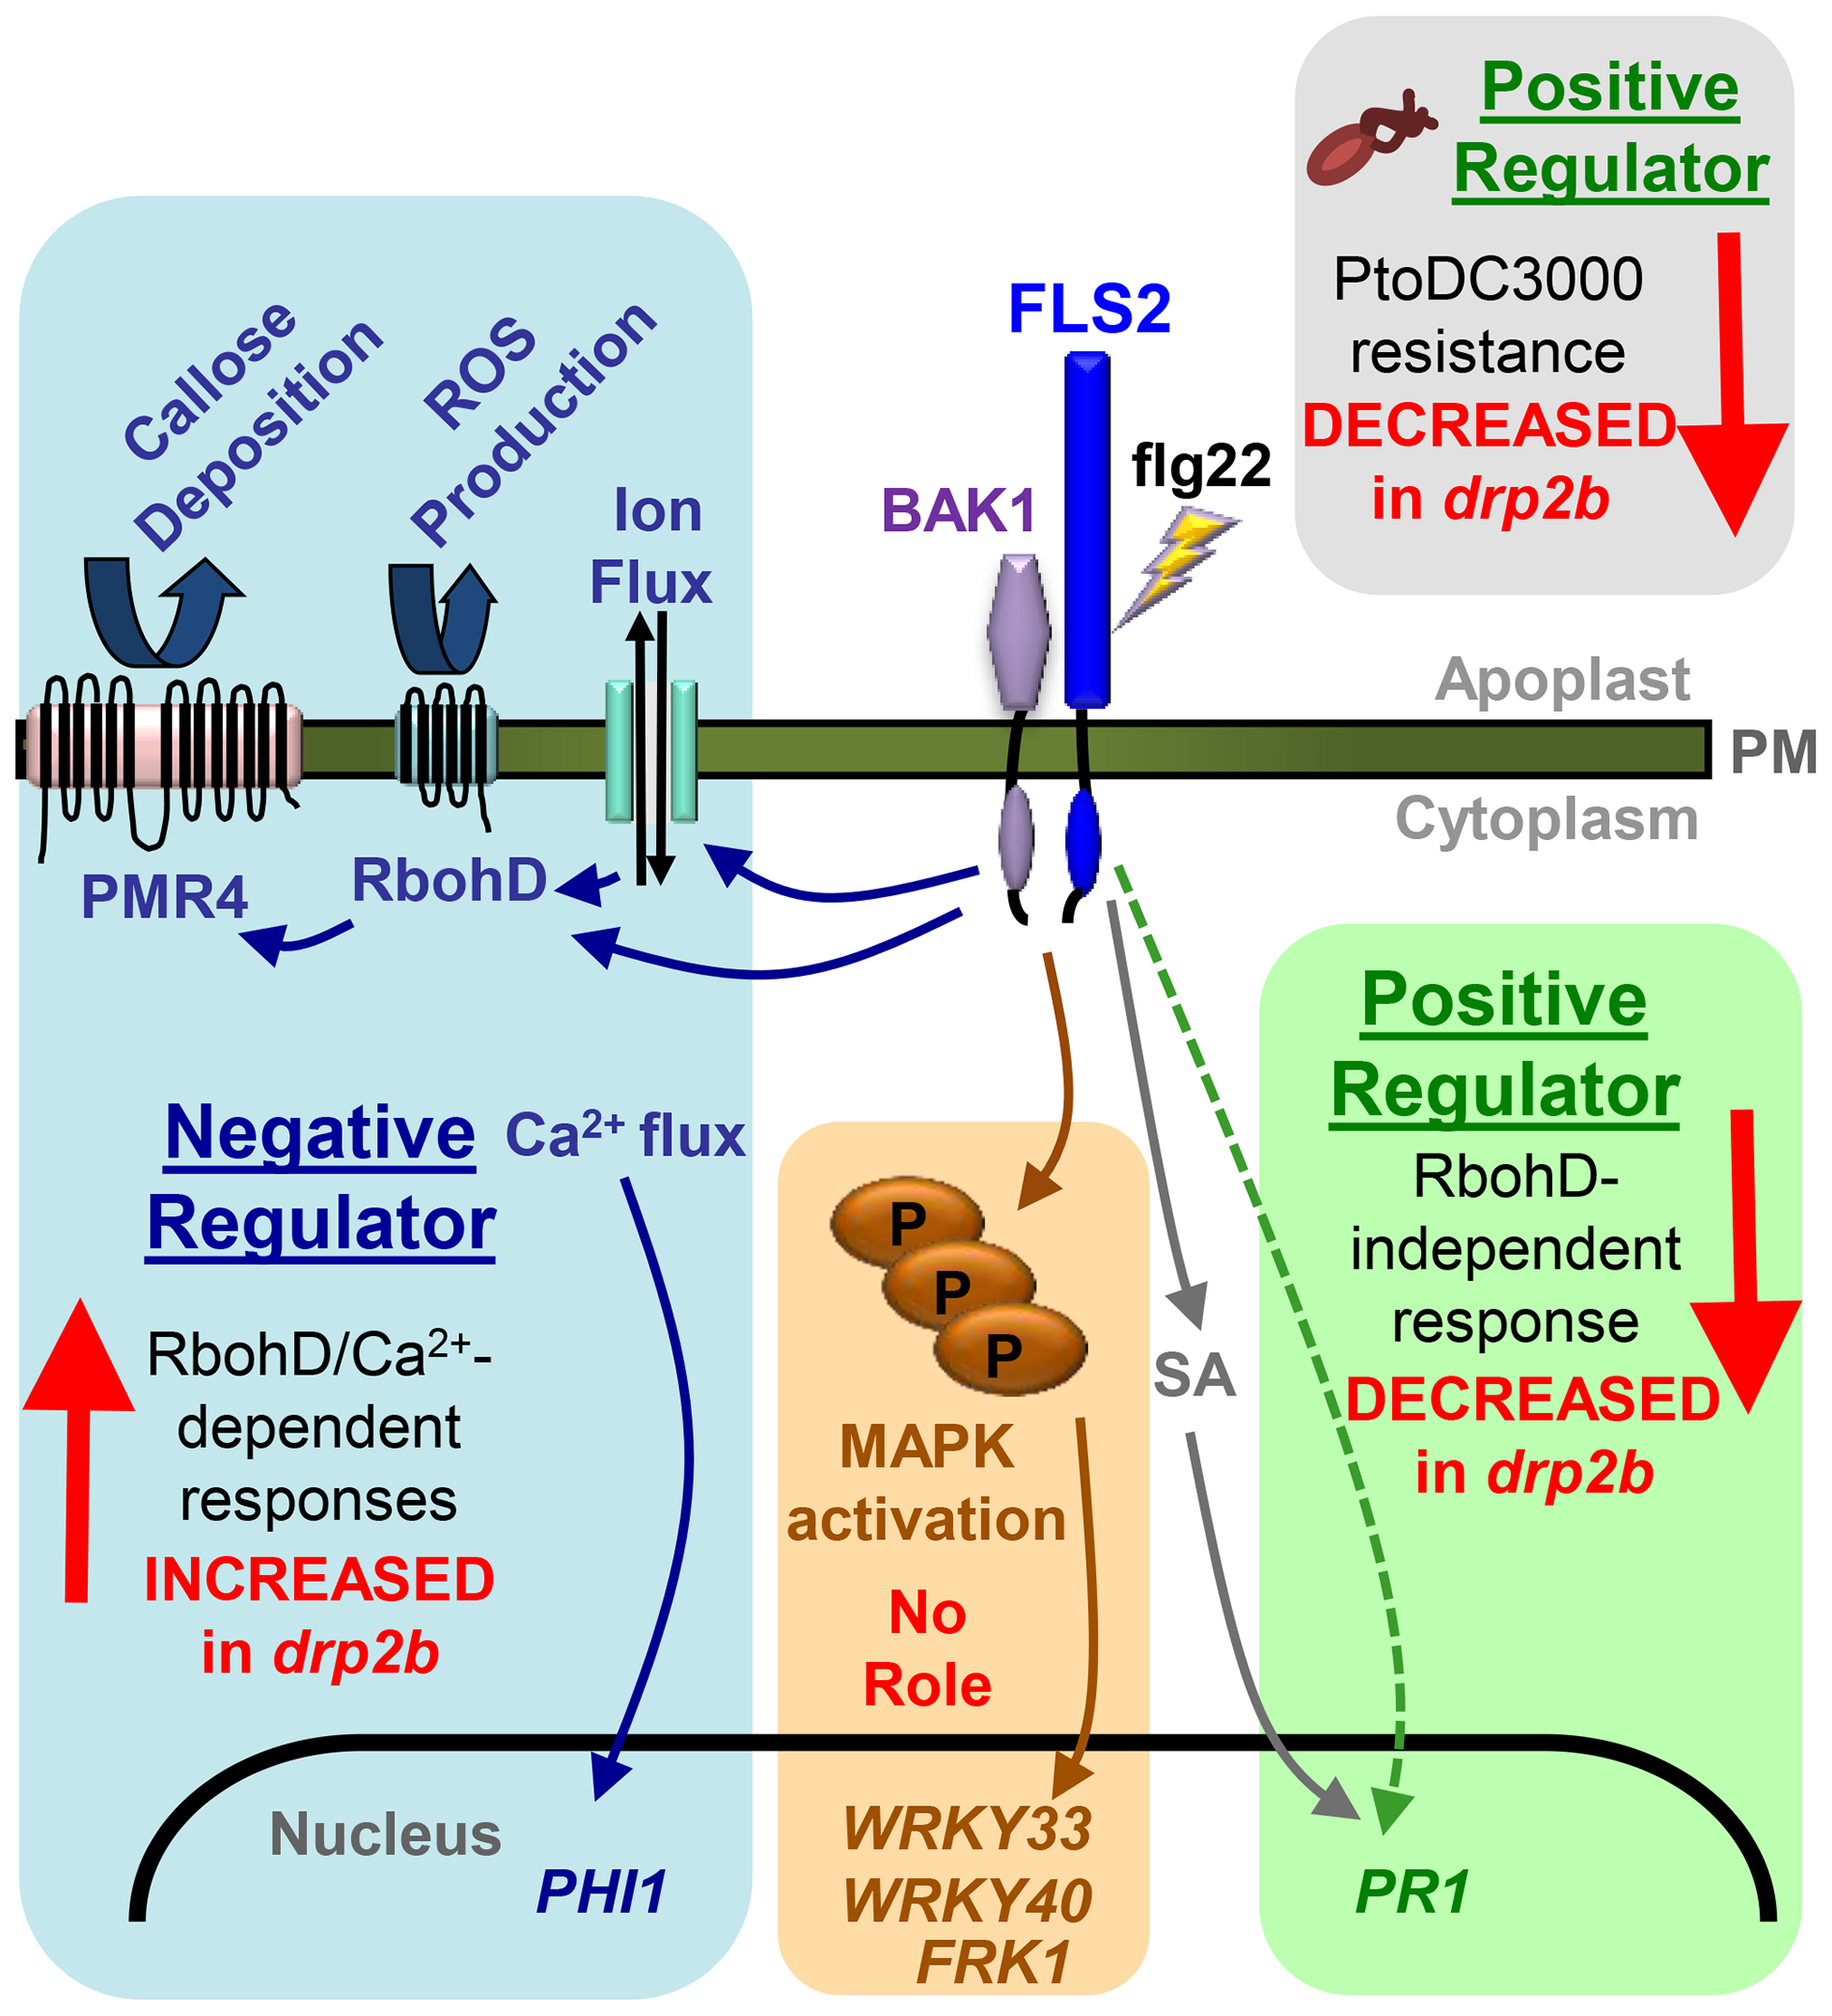 Summary of non-canonical response defects in <i>drp2b</i> within the different branches of the flg22-signaling network.